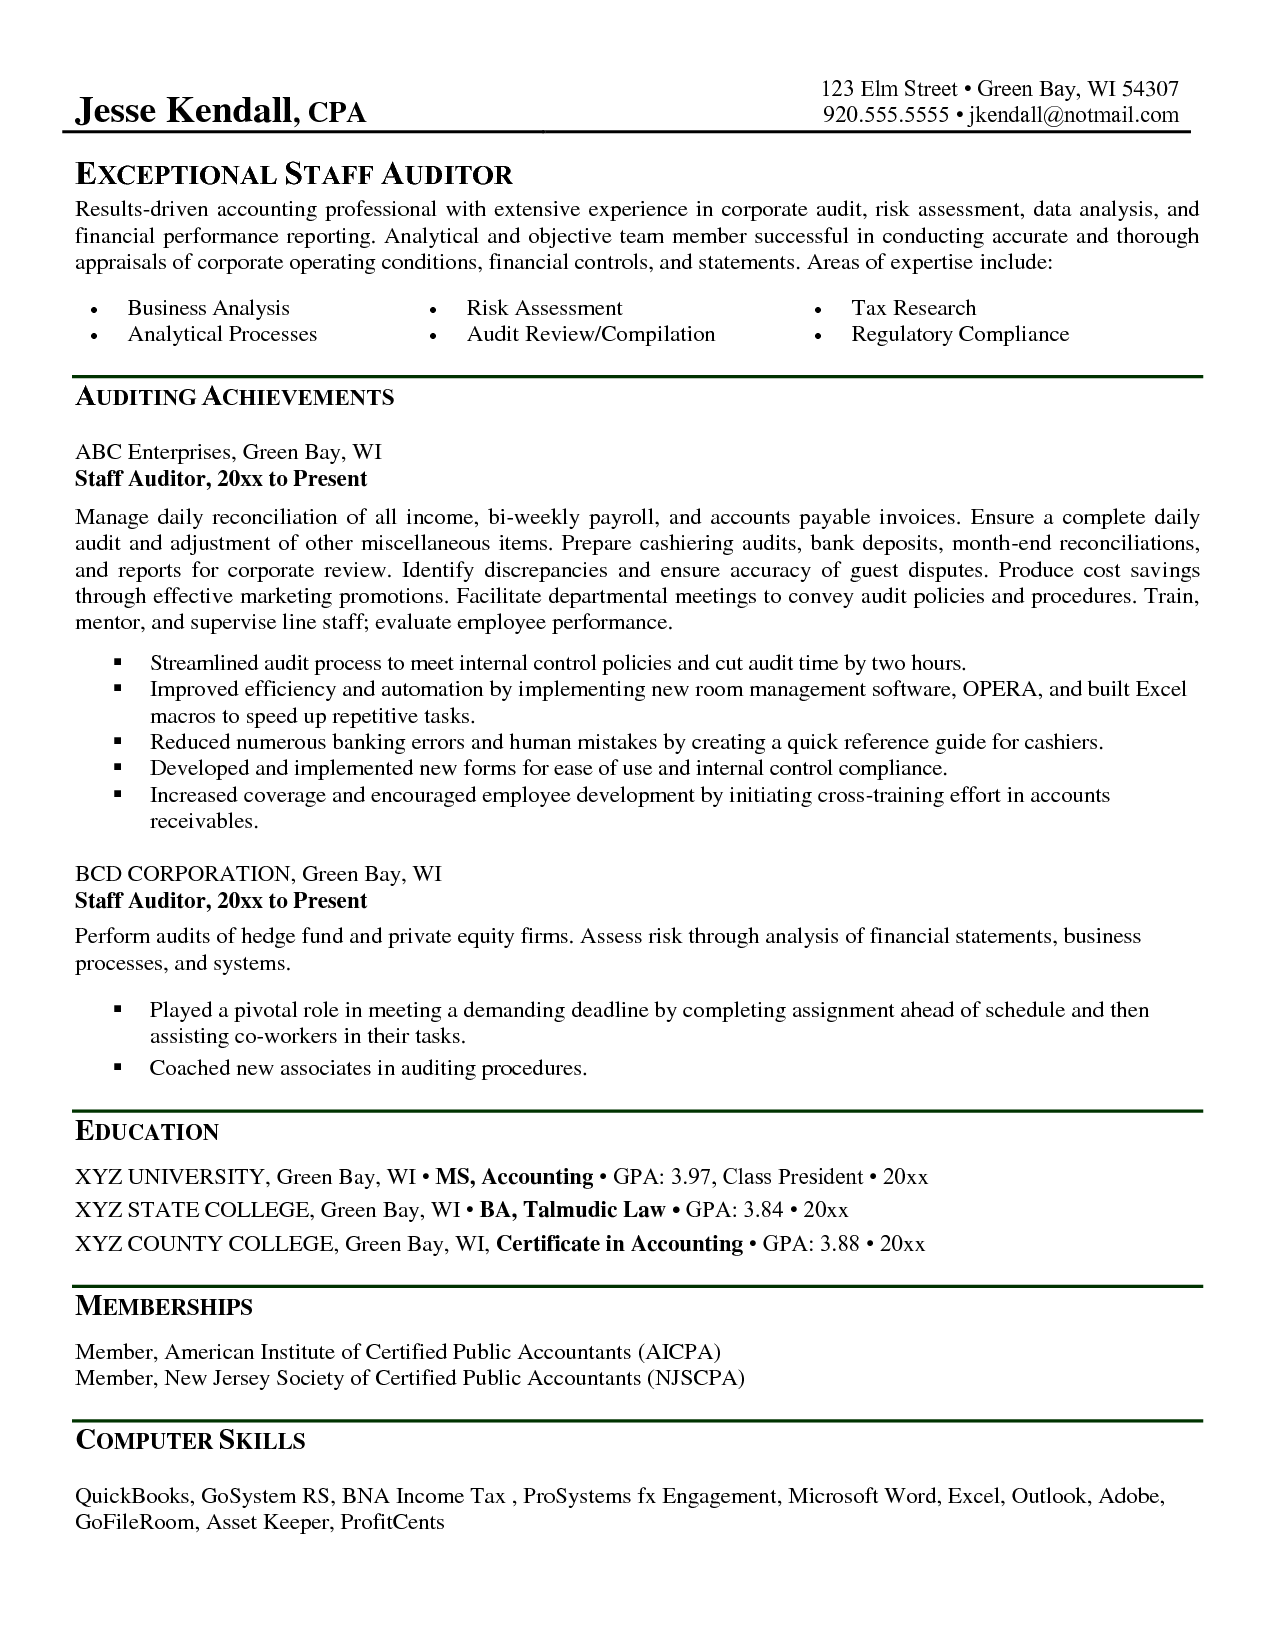 Stay At Home Returning To Work Cover Letter  Applications